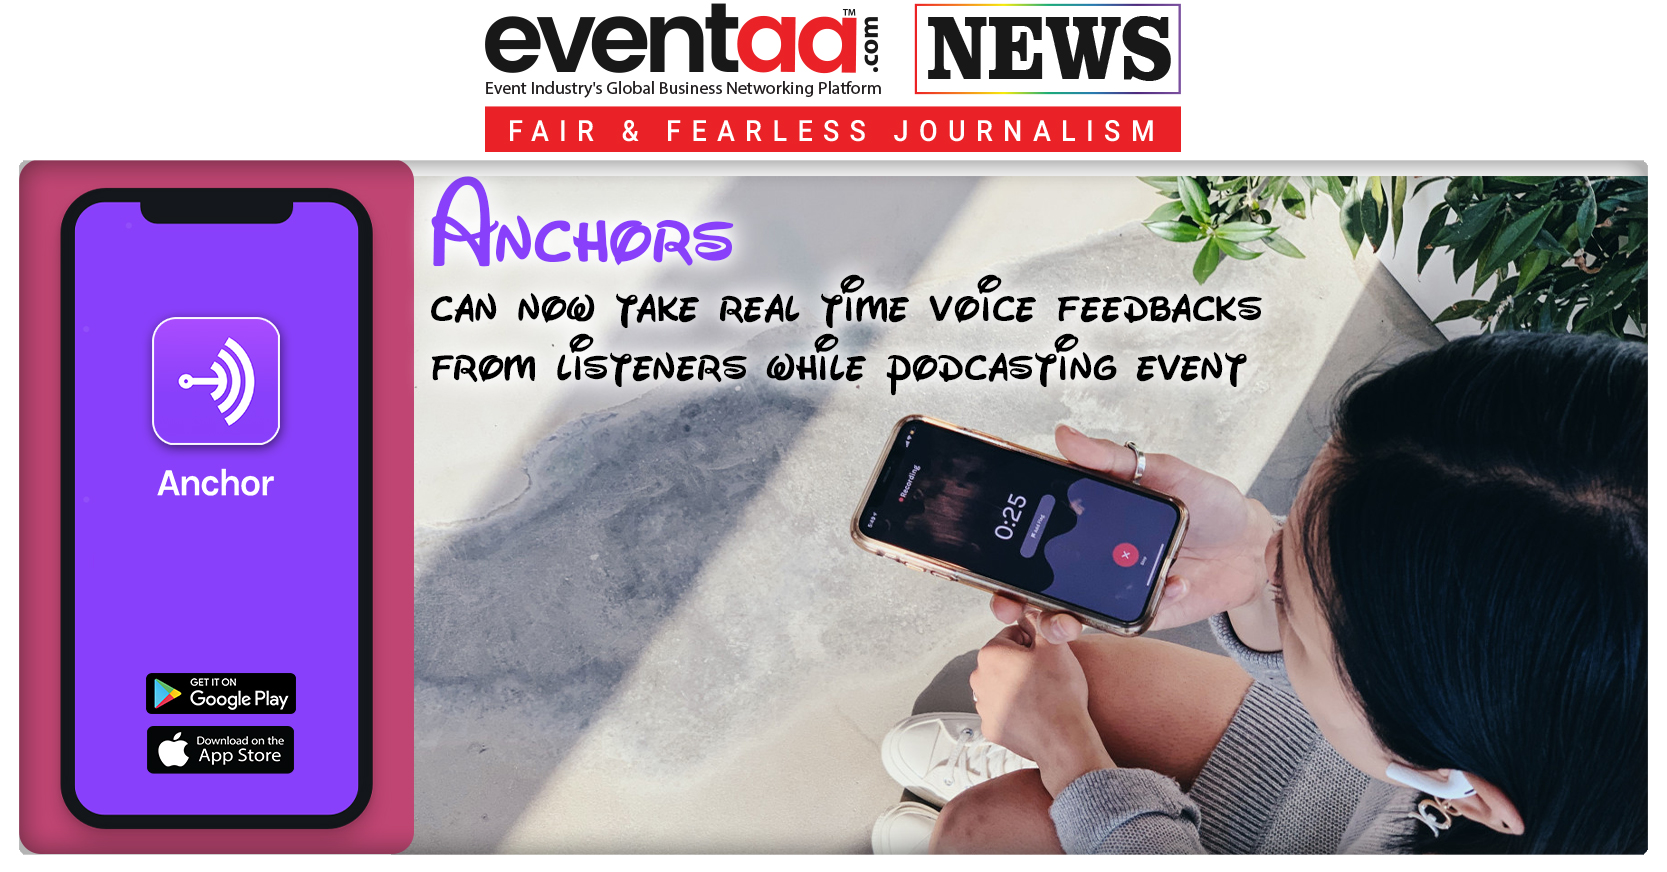 Anchors can now take real time voice feedbacks from listeners while podcasting event